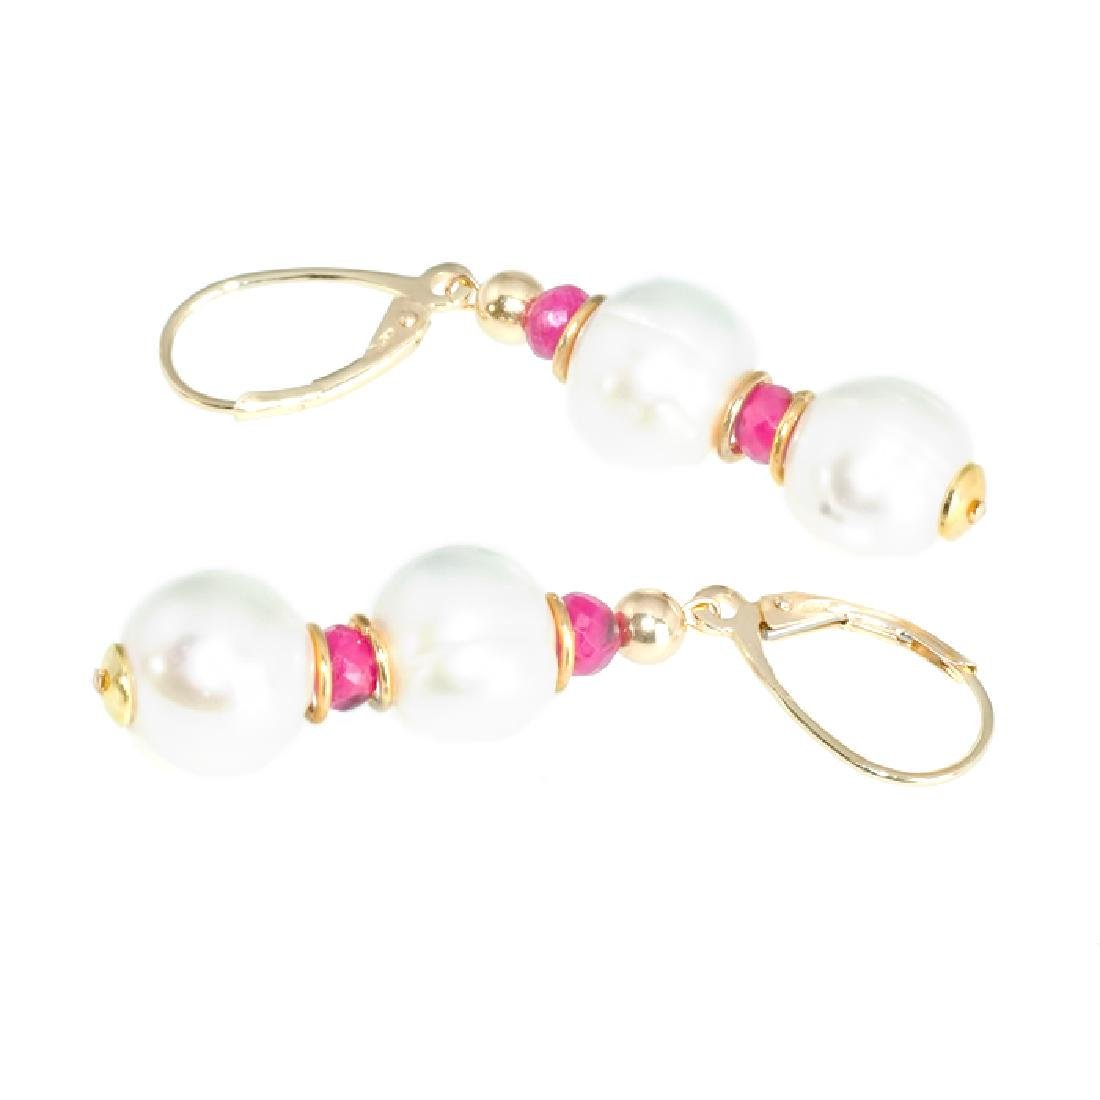 Classic Style Pearls and Rubies Earrings - 4